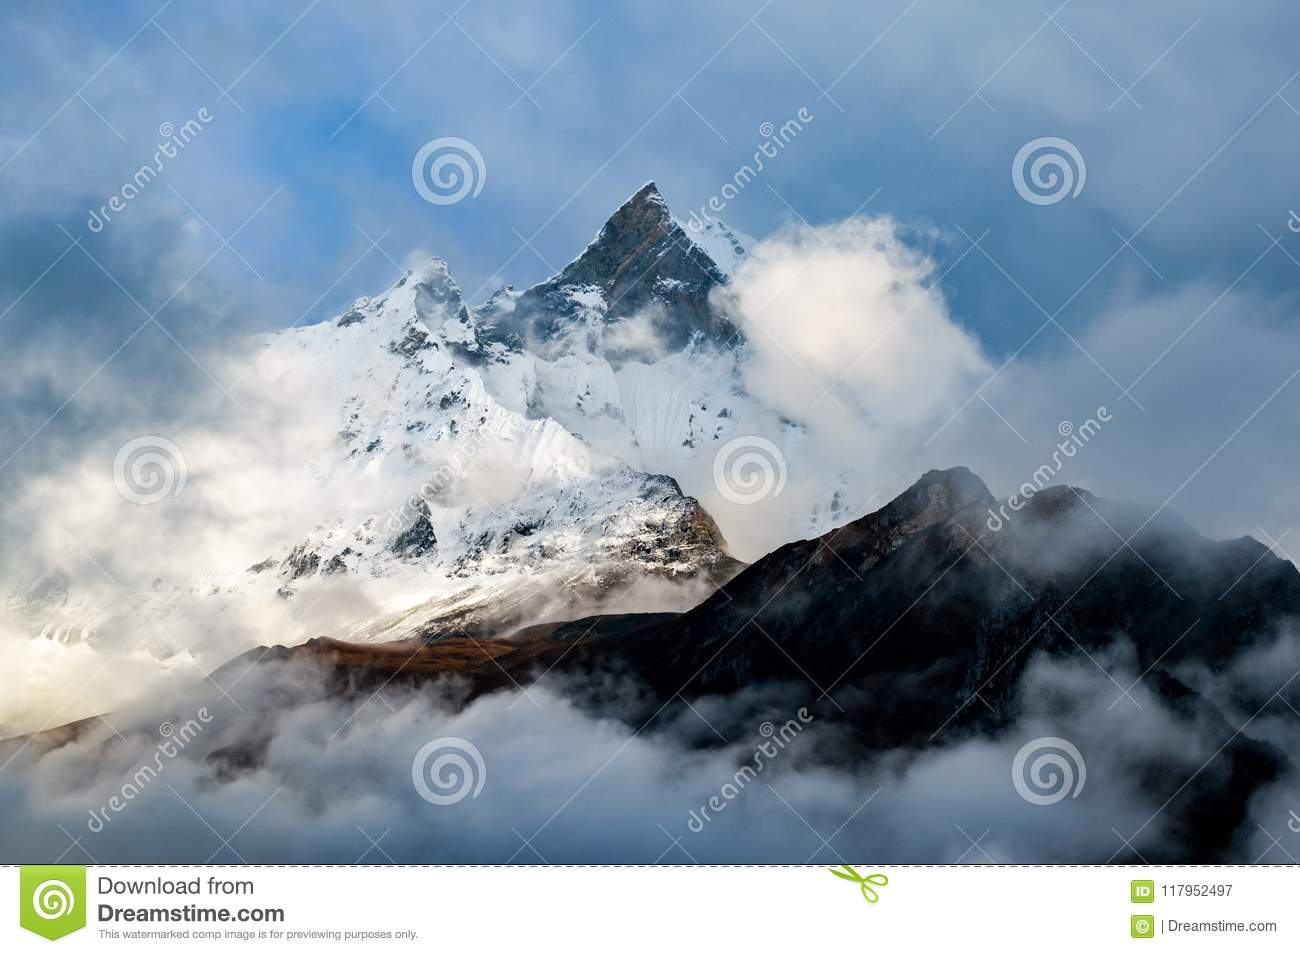 Machapuchare, Fish Tail Mountain rising above the clouds from the Annapurna base camp trail, Nepal